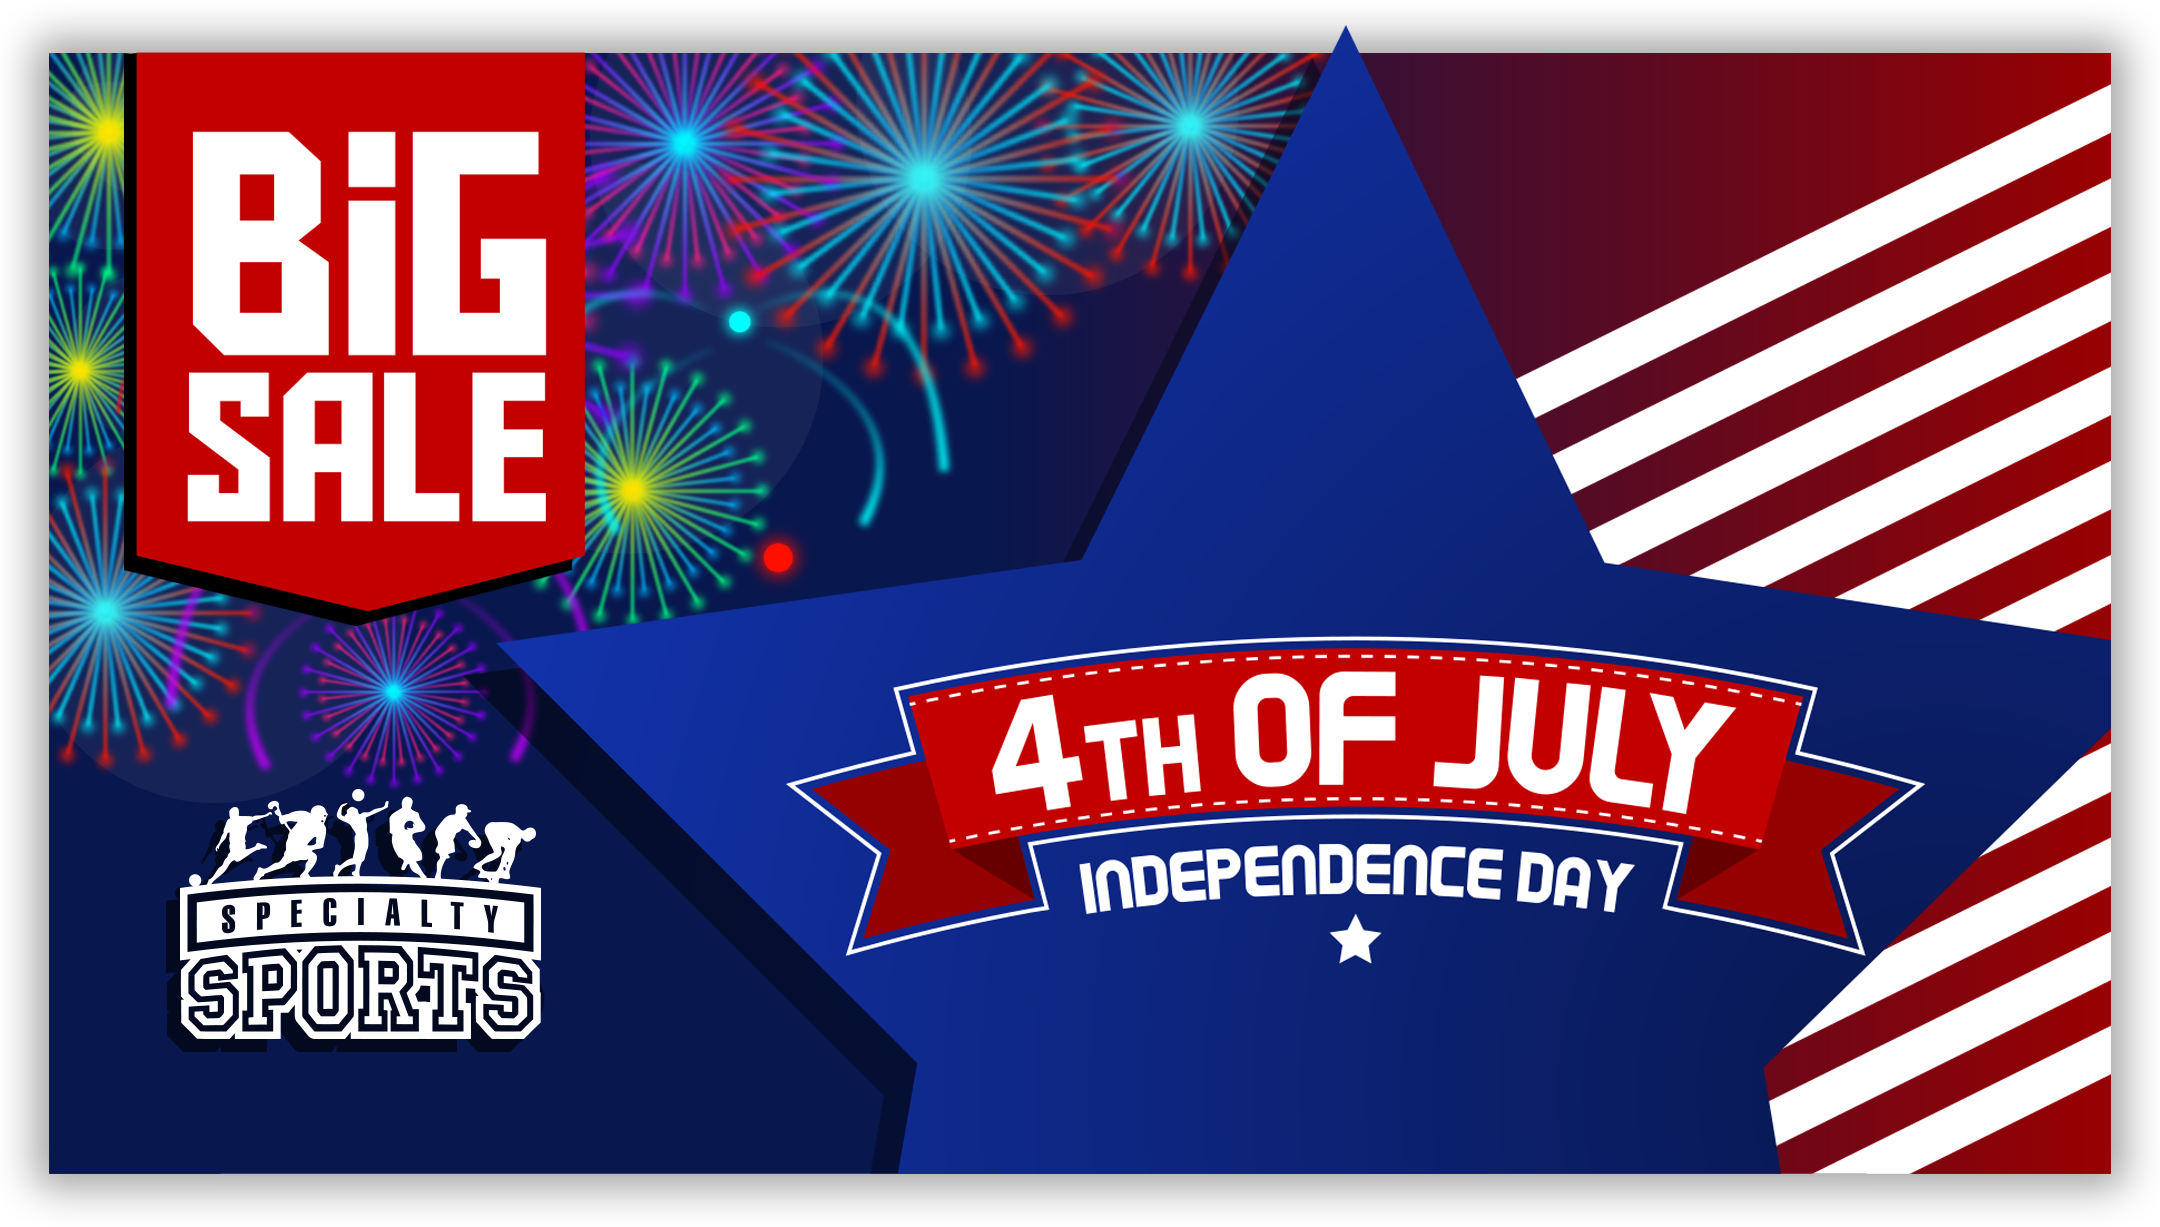 EXTENDED!! 4th of July Sidewalk Blowout Sale!!